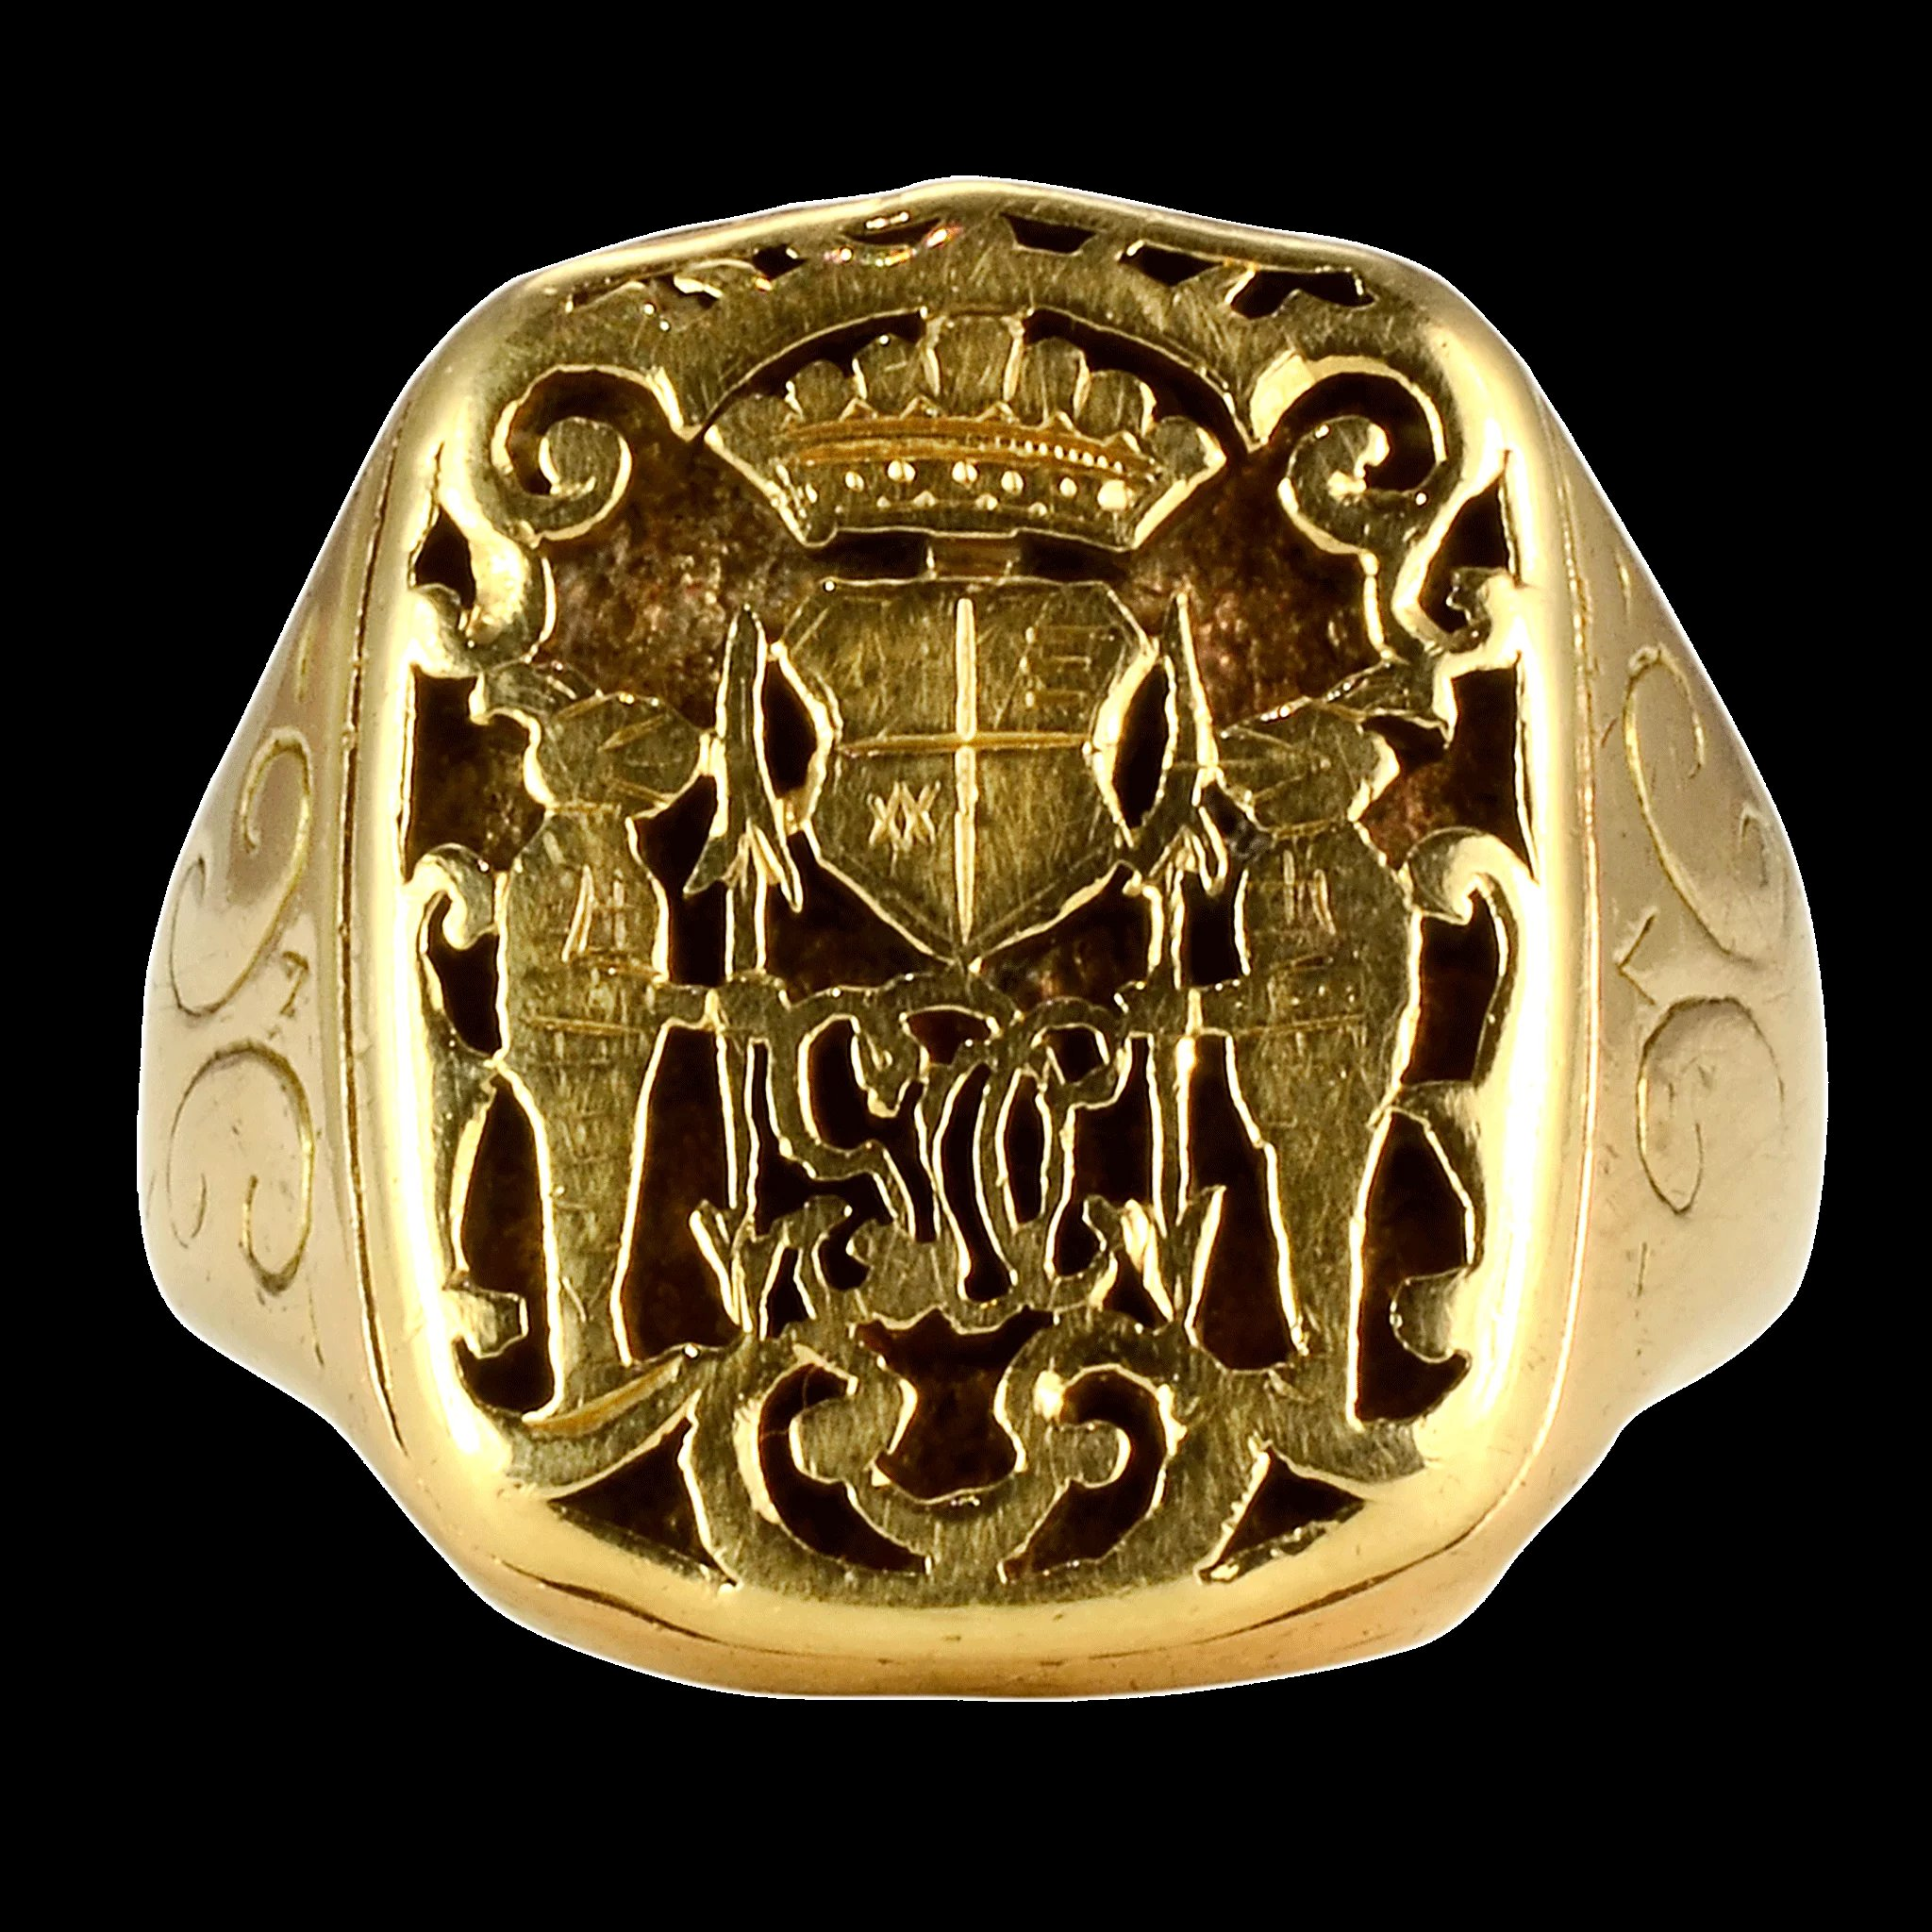 ring seal coat surface crest engraved signet x arms img yellow products rings family of gold carat